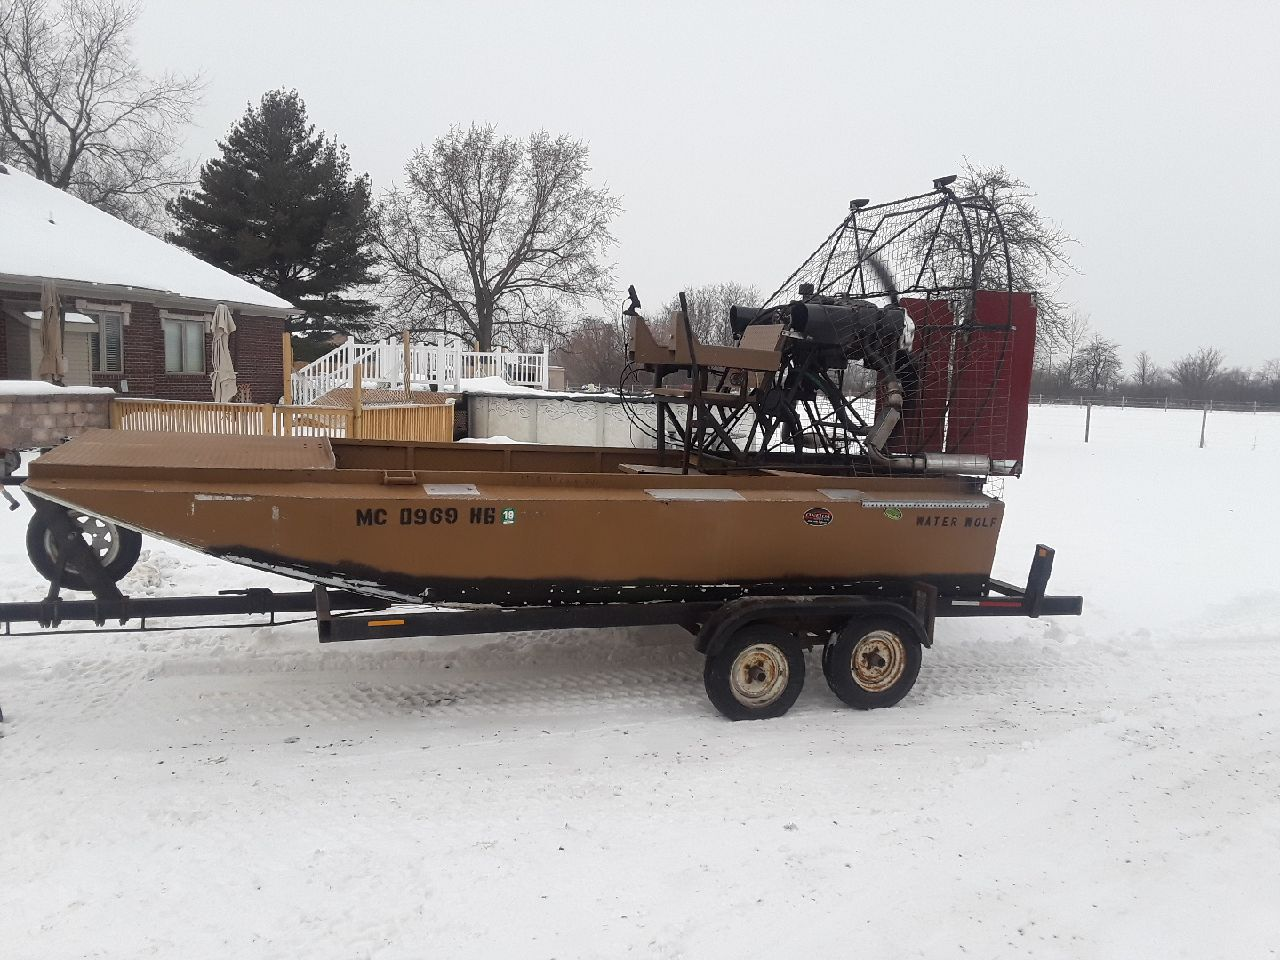 Air boat | Michigan Sportsman - Online Michigan Hunting and